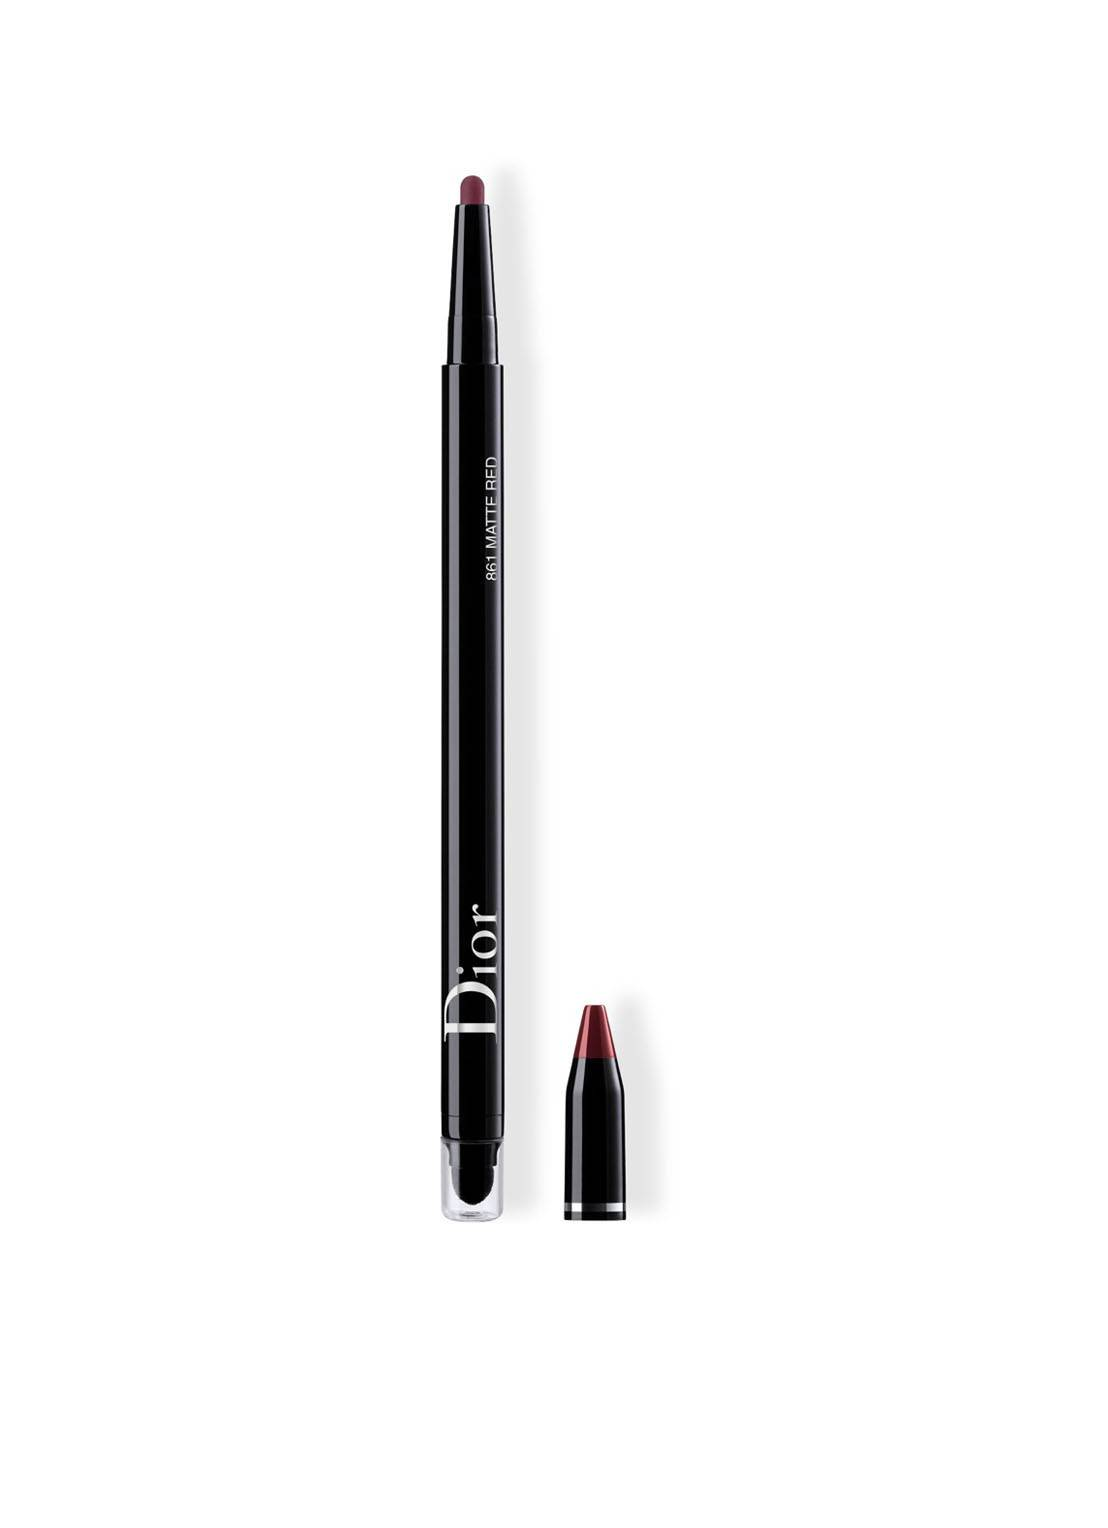 DIOR Diorshow 24H Stylo - eye-liner imperméable - 861 Matte Red – Limited Edition